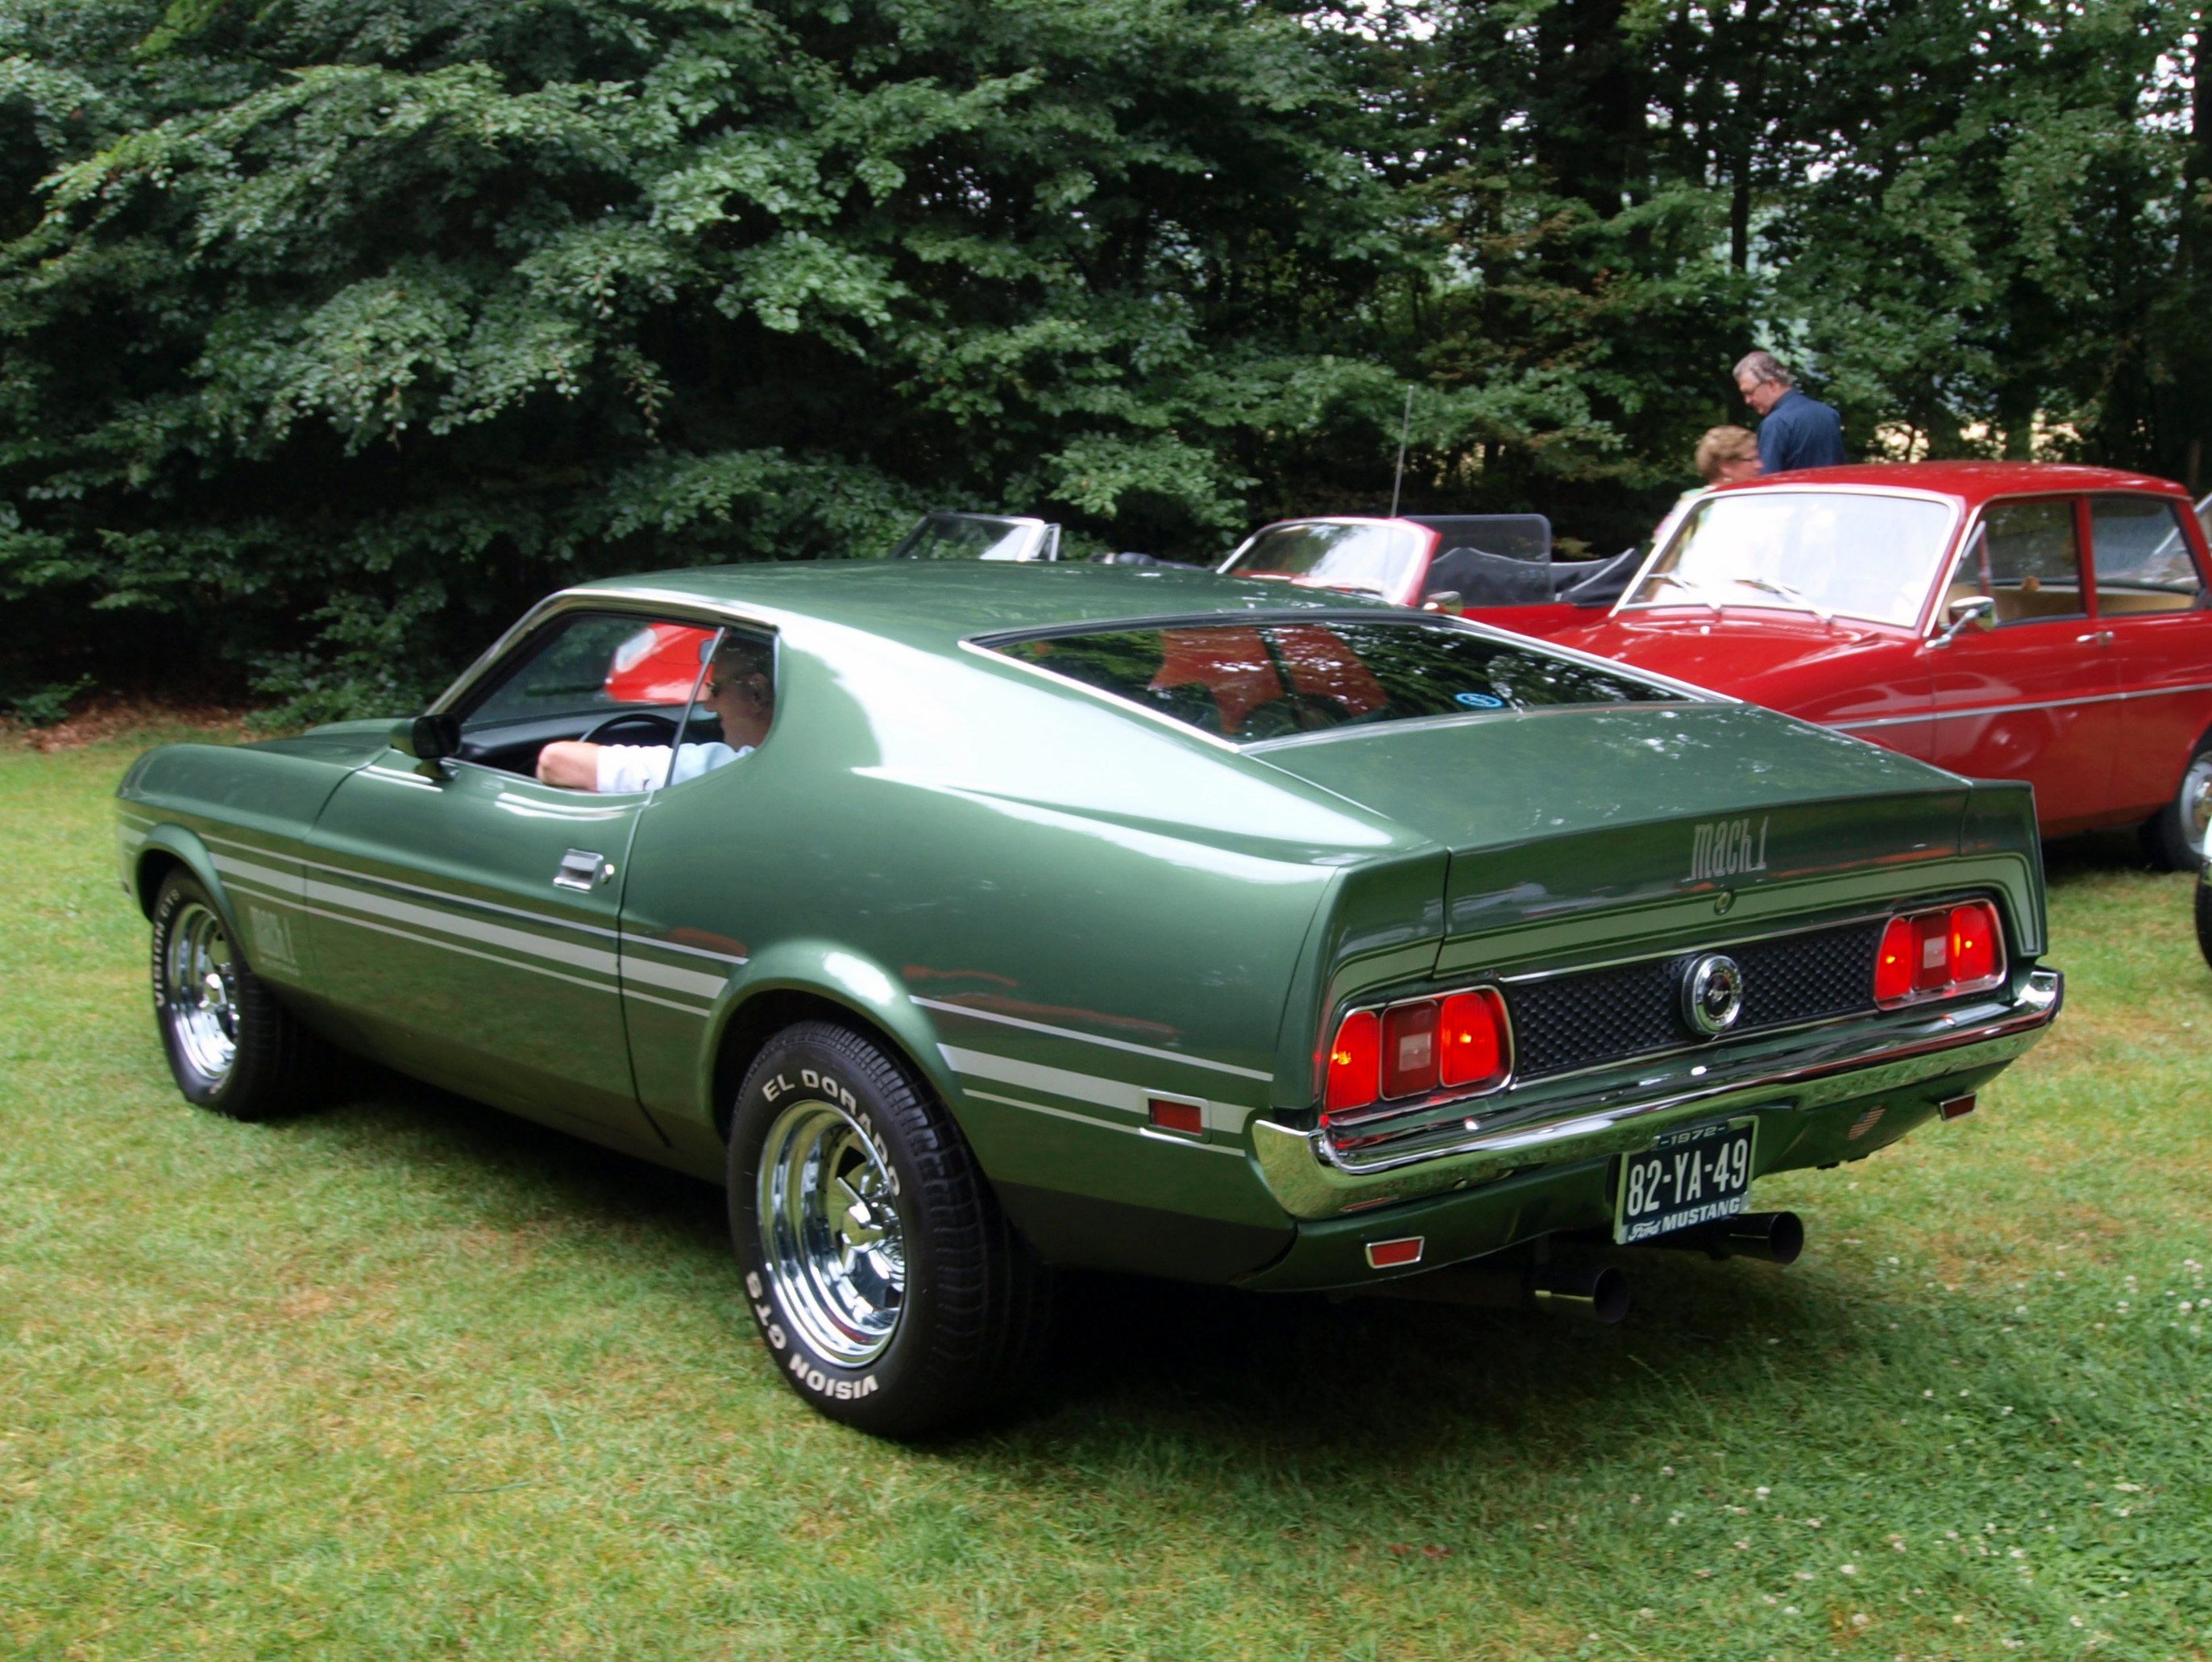 Ford Mustang Mach 1 1973  Rides  Pinterest  Mustangs and 1